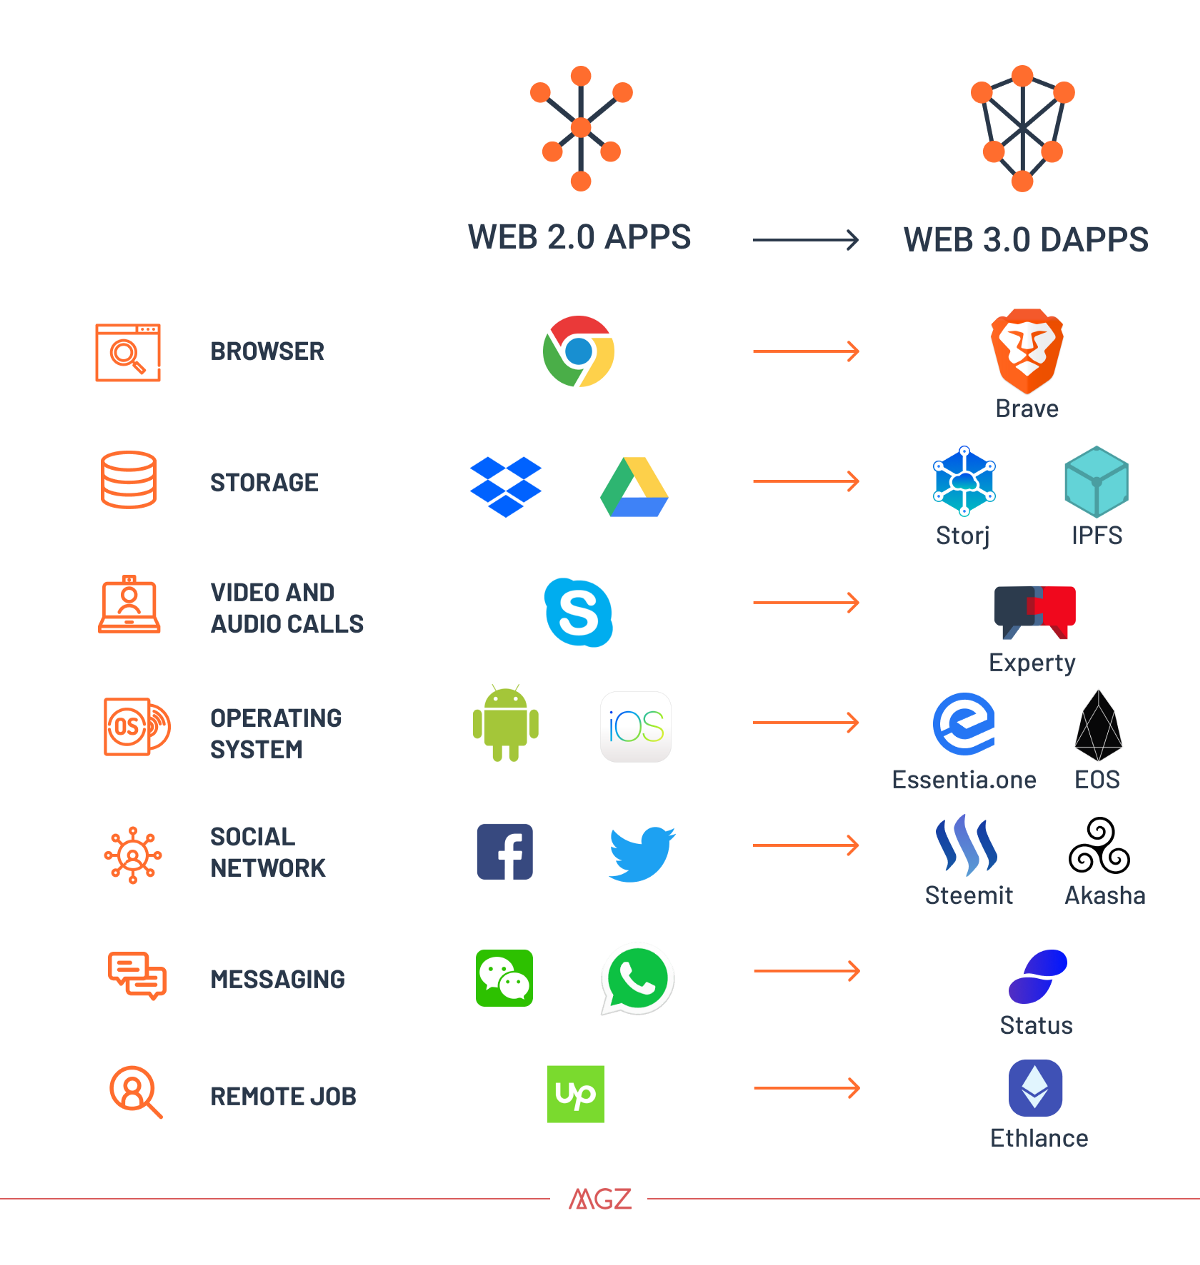 What changes can Web 3.0 bring?